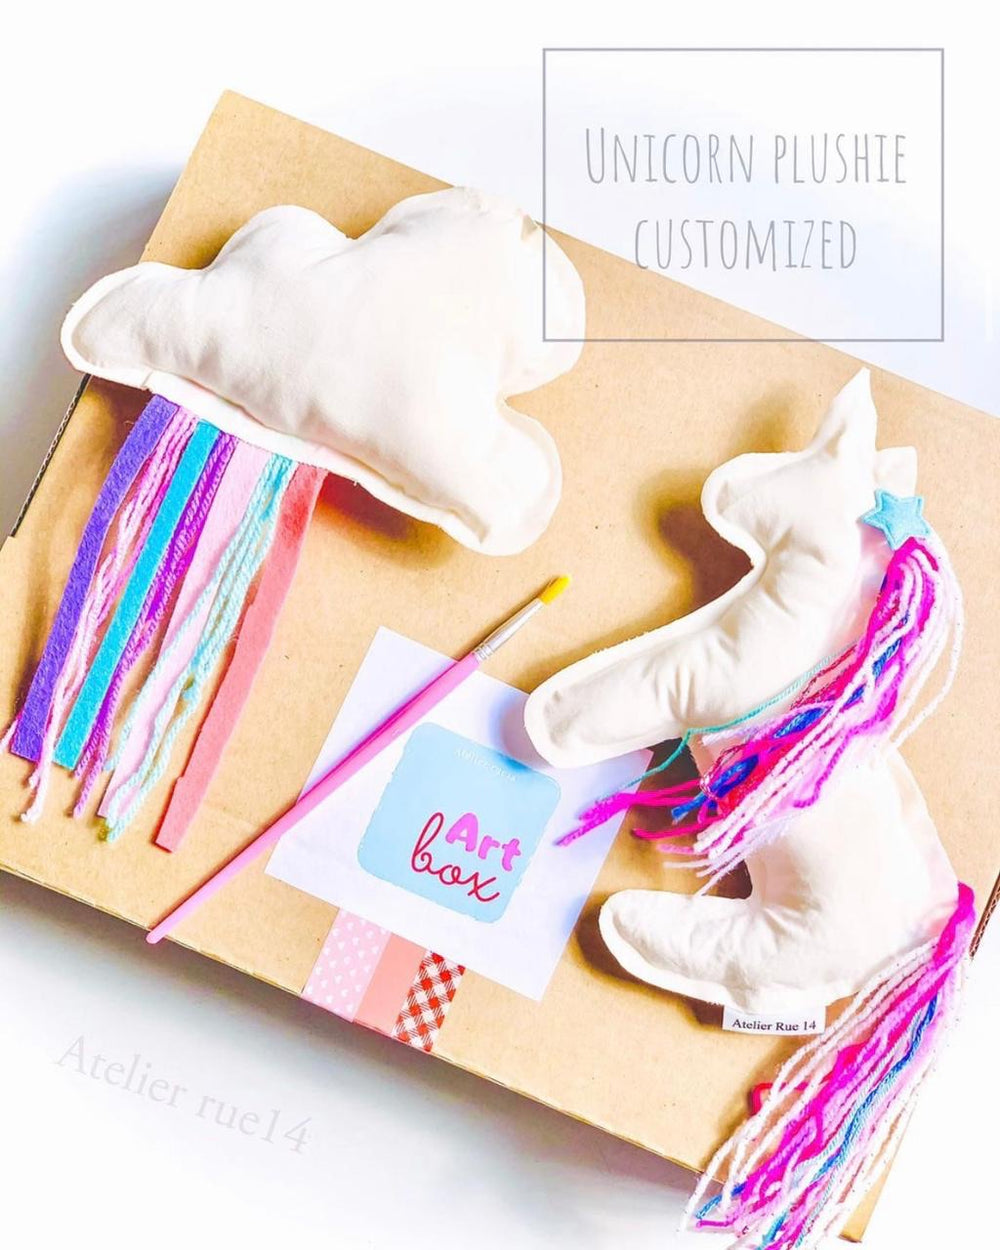 Unicorn Cloud Rue 14 Plushie